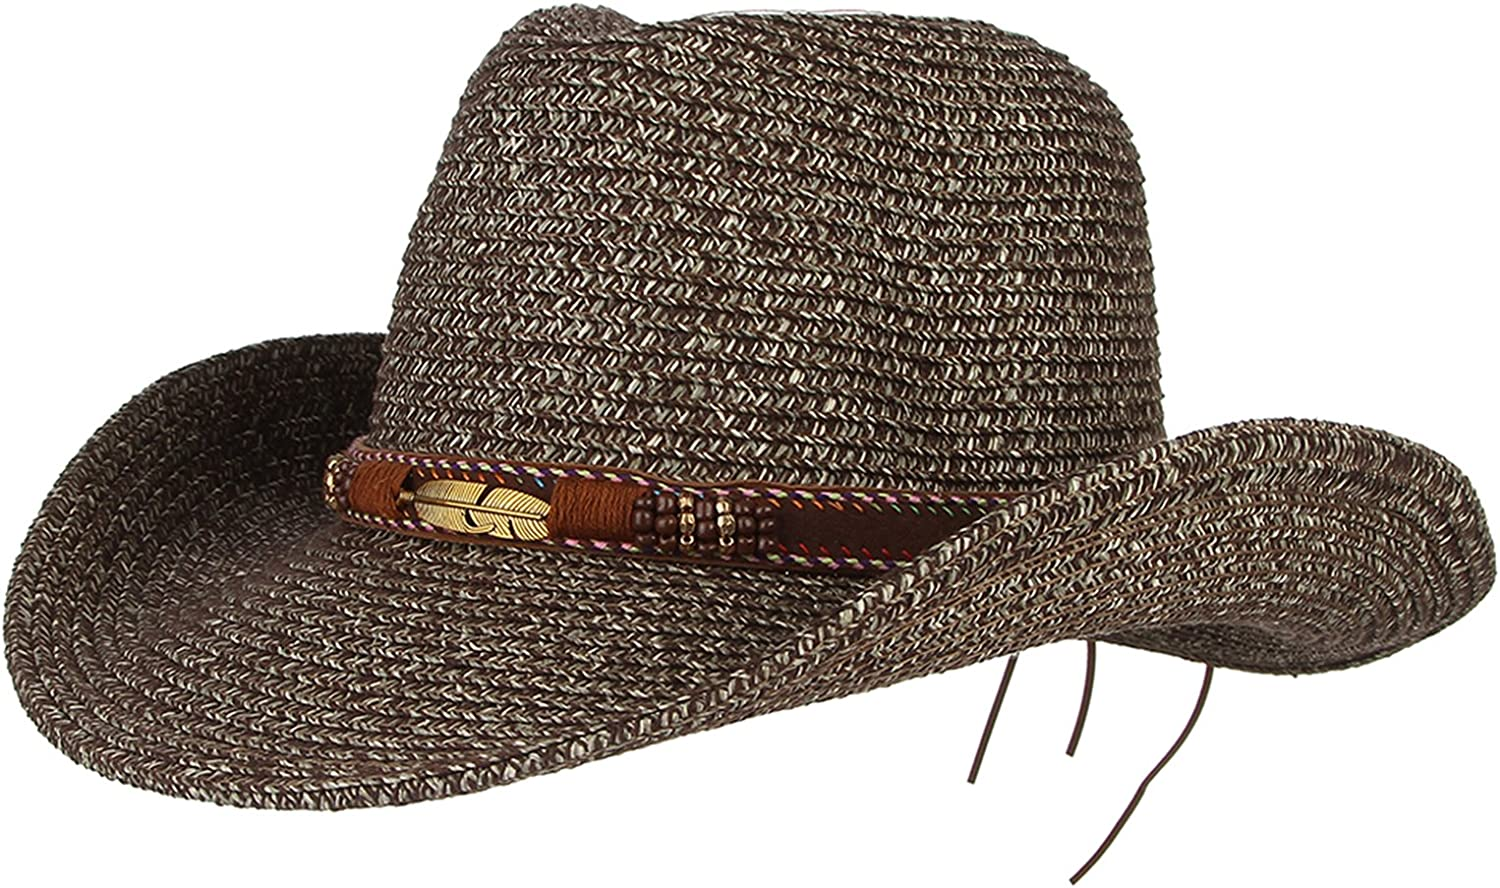 GEMVIE Cowboy Hat Floppy Sun Hat Straw Summer Beach Cap Wide Brim Straw Hats